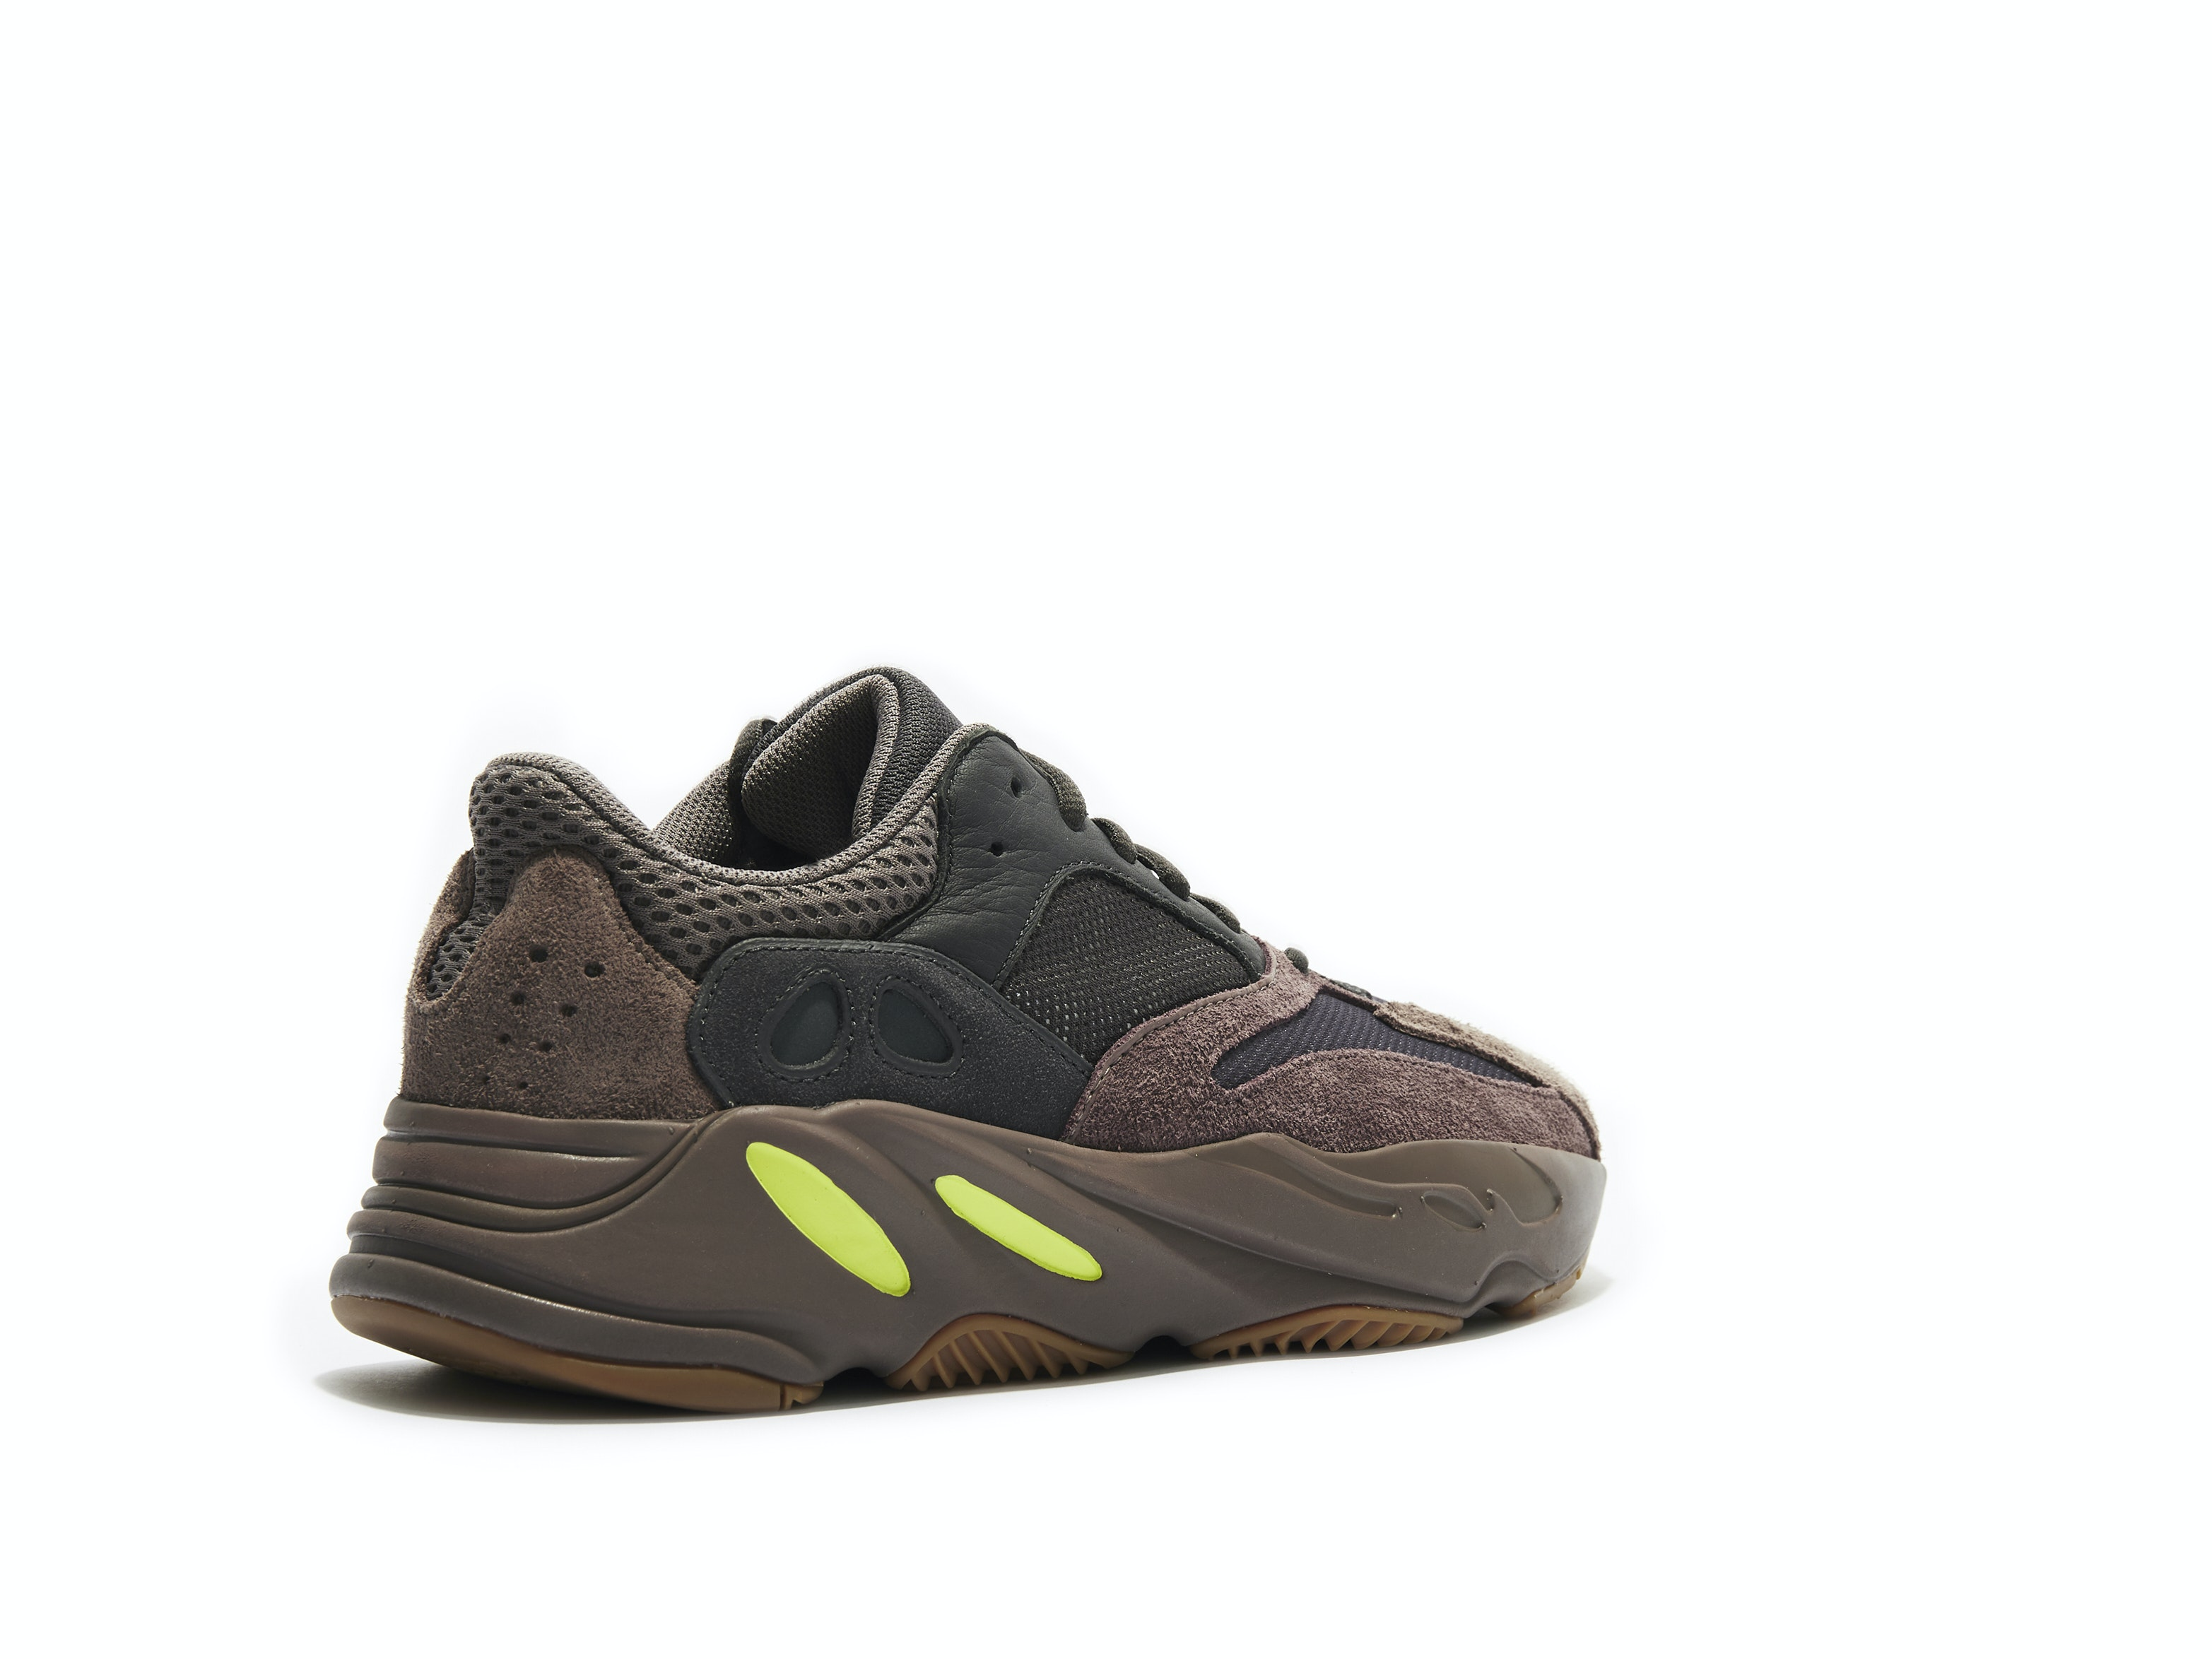 00536bc1996f8 Yeezy Boost 700 Mauve. 100% AuthenticAvg Delivery Time  1-2 days. Adidas    EE9614